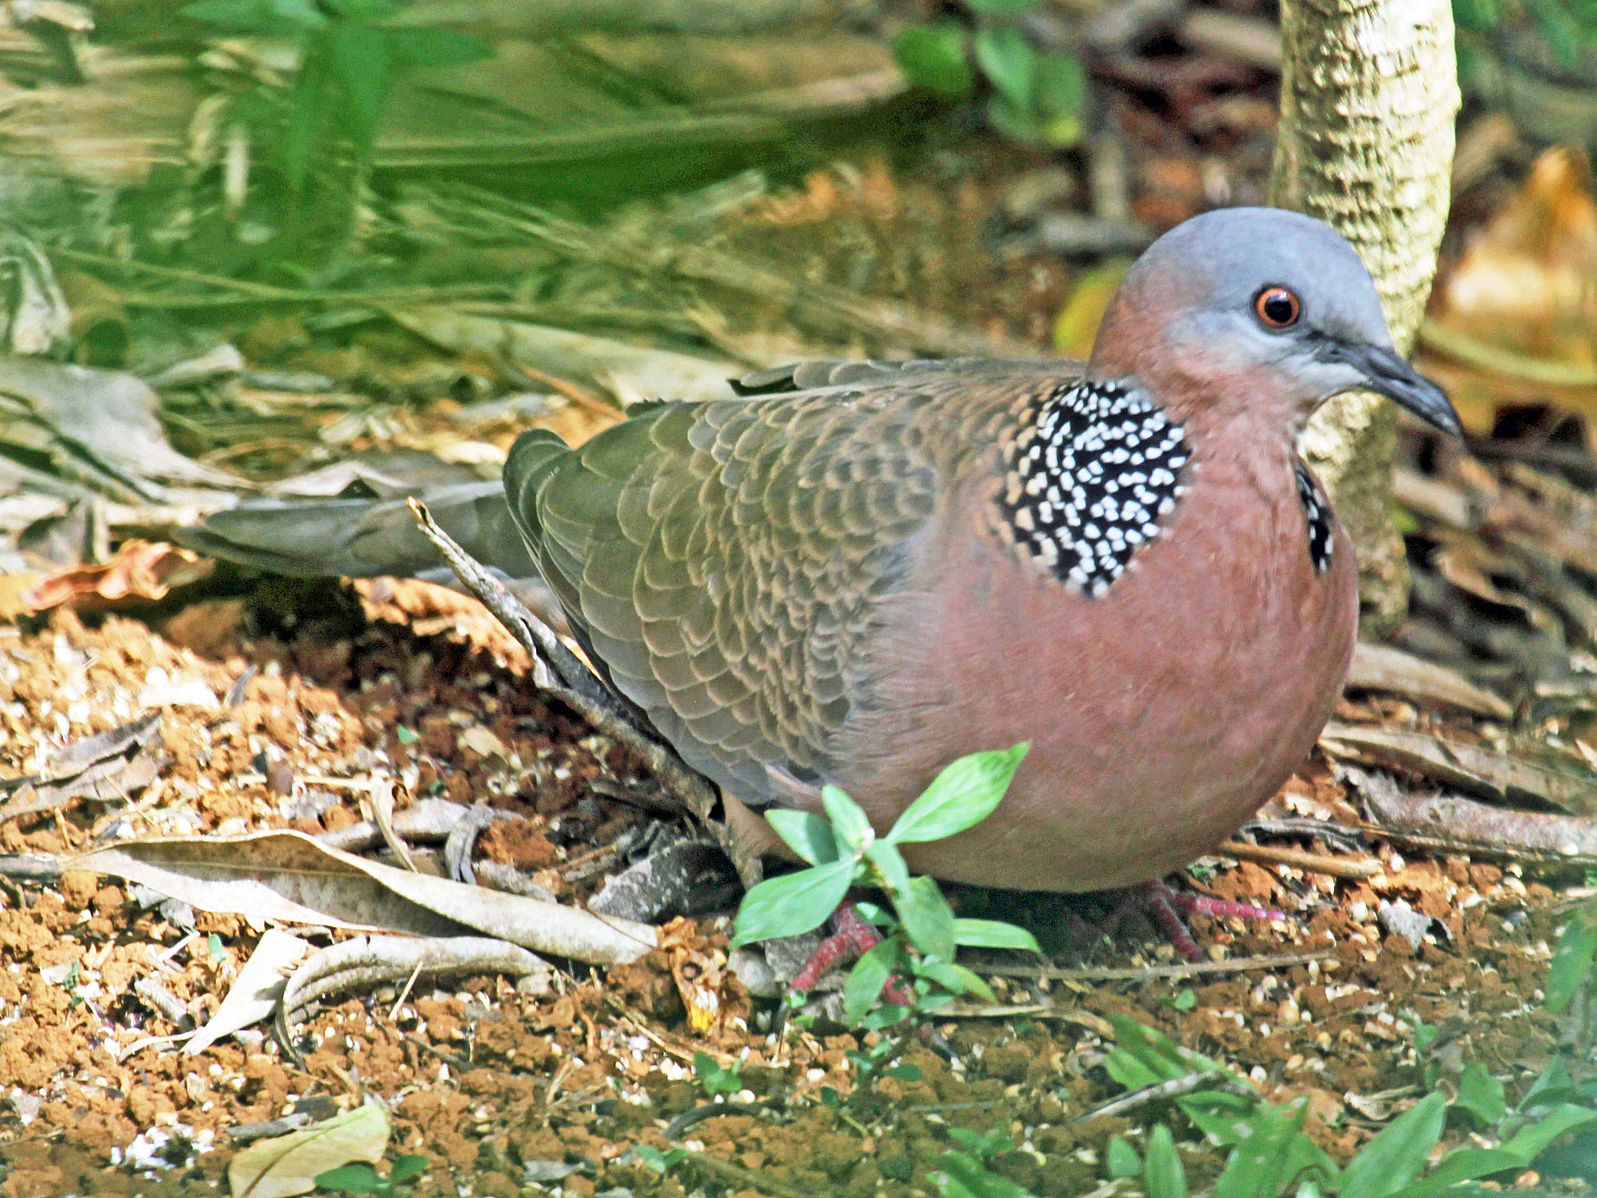 Spotted Dove (Streptopelia chinensis or Spilopelia chinensis), also known as the Spotted Turtle Dove - Kauai, Hawaii. (Photo: Dick Daniels/Carolinabirds.org)